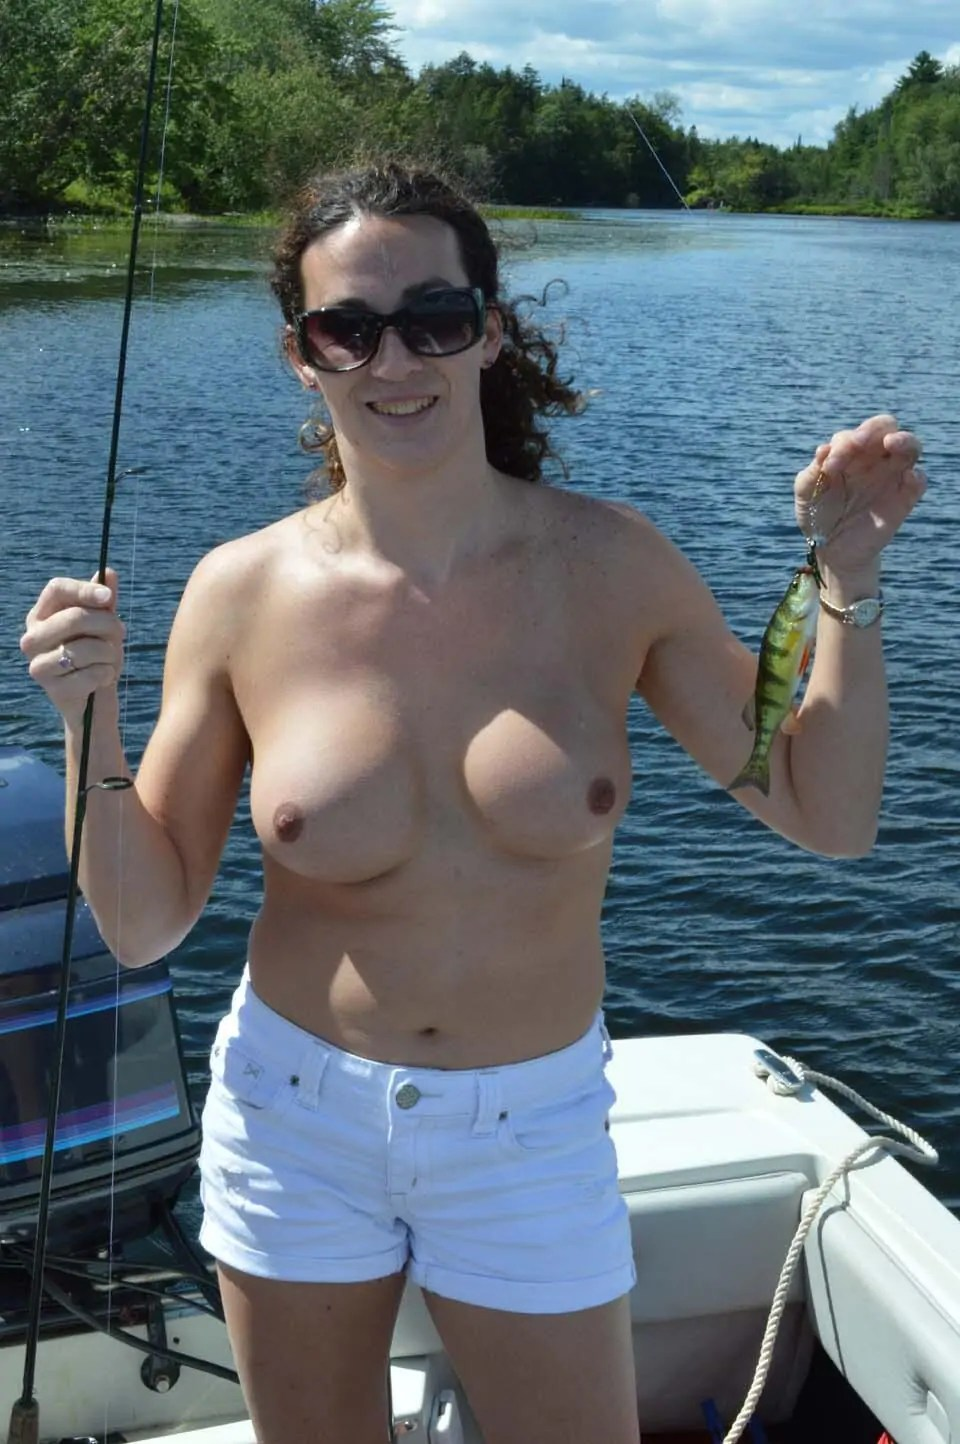 Girl fishing naked on boat